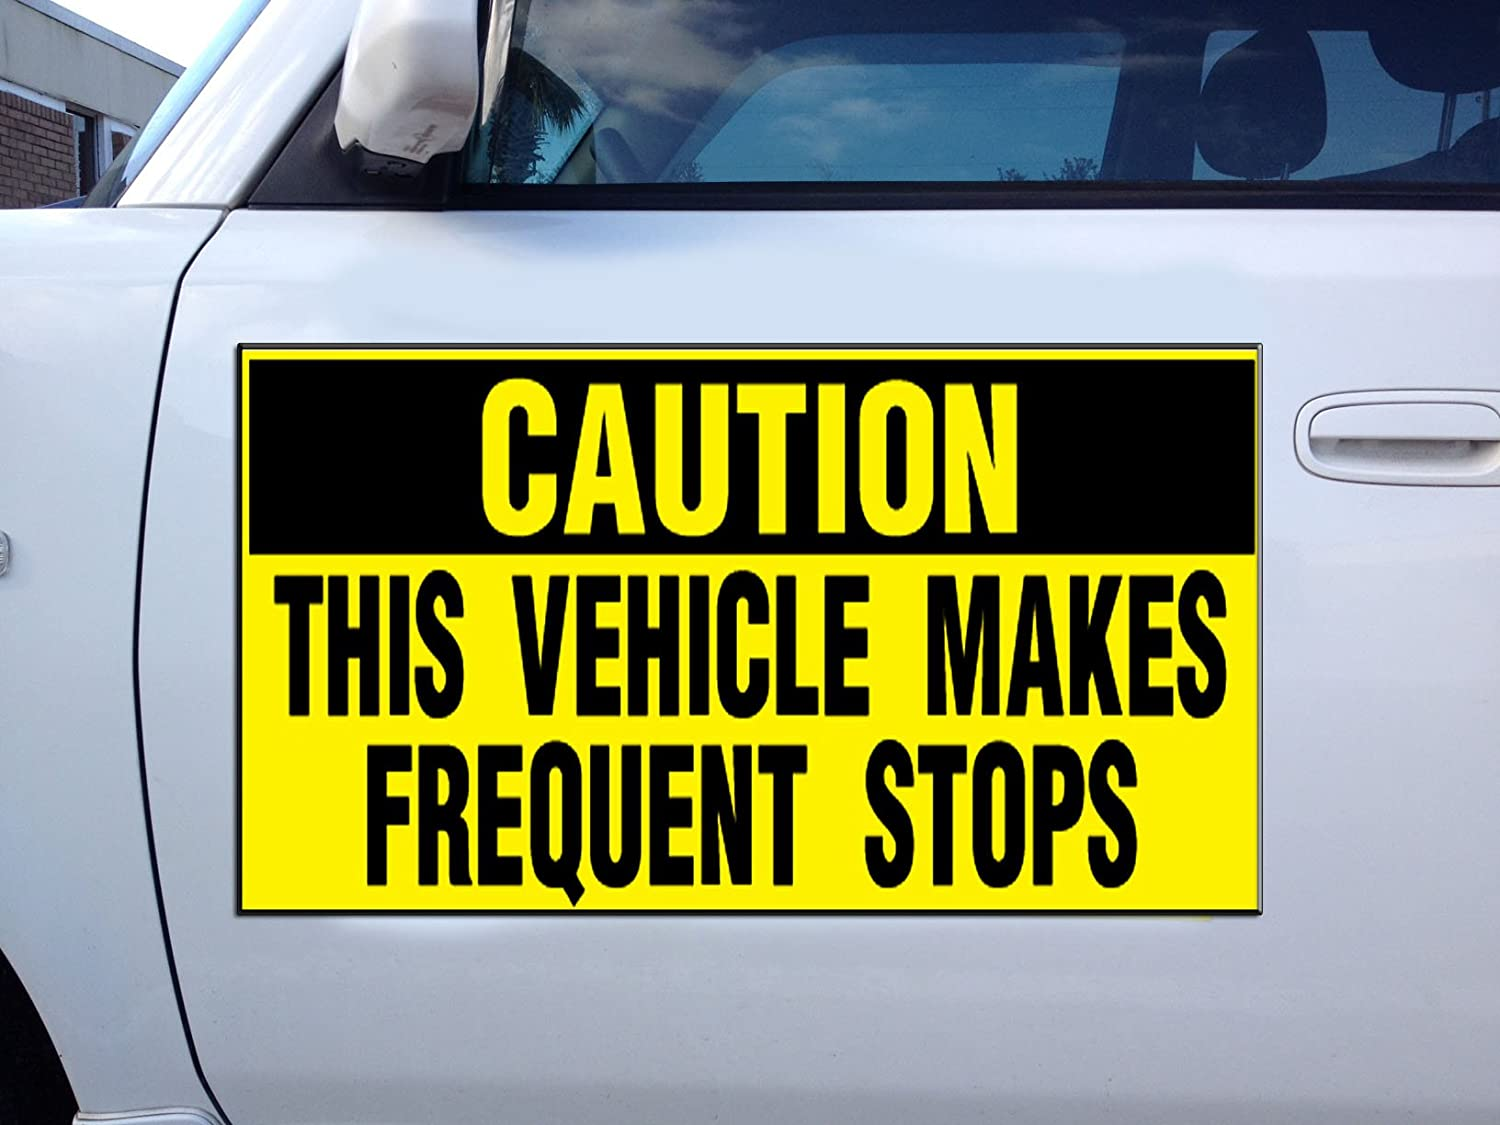 Fastasticdeals Vehicles Makes Frequent Stops Caution Car Door Magnets Magnetic Signs-Qty 2//9 x 12 Inches